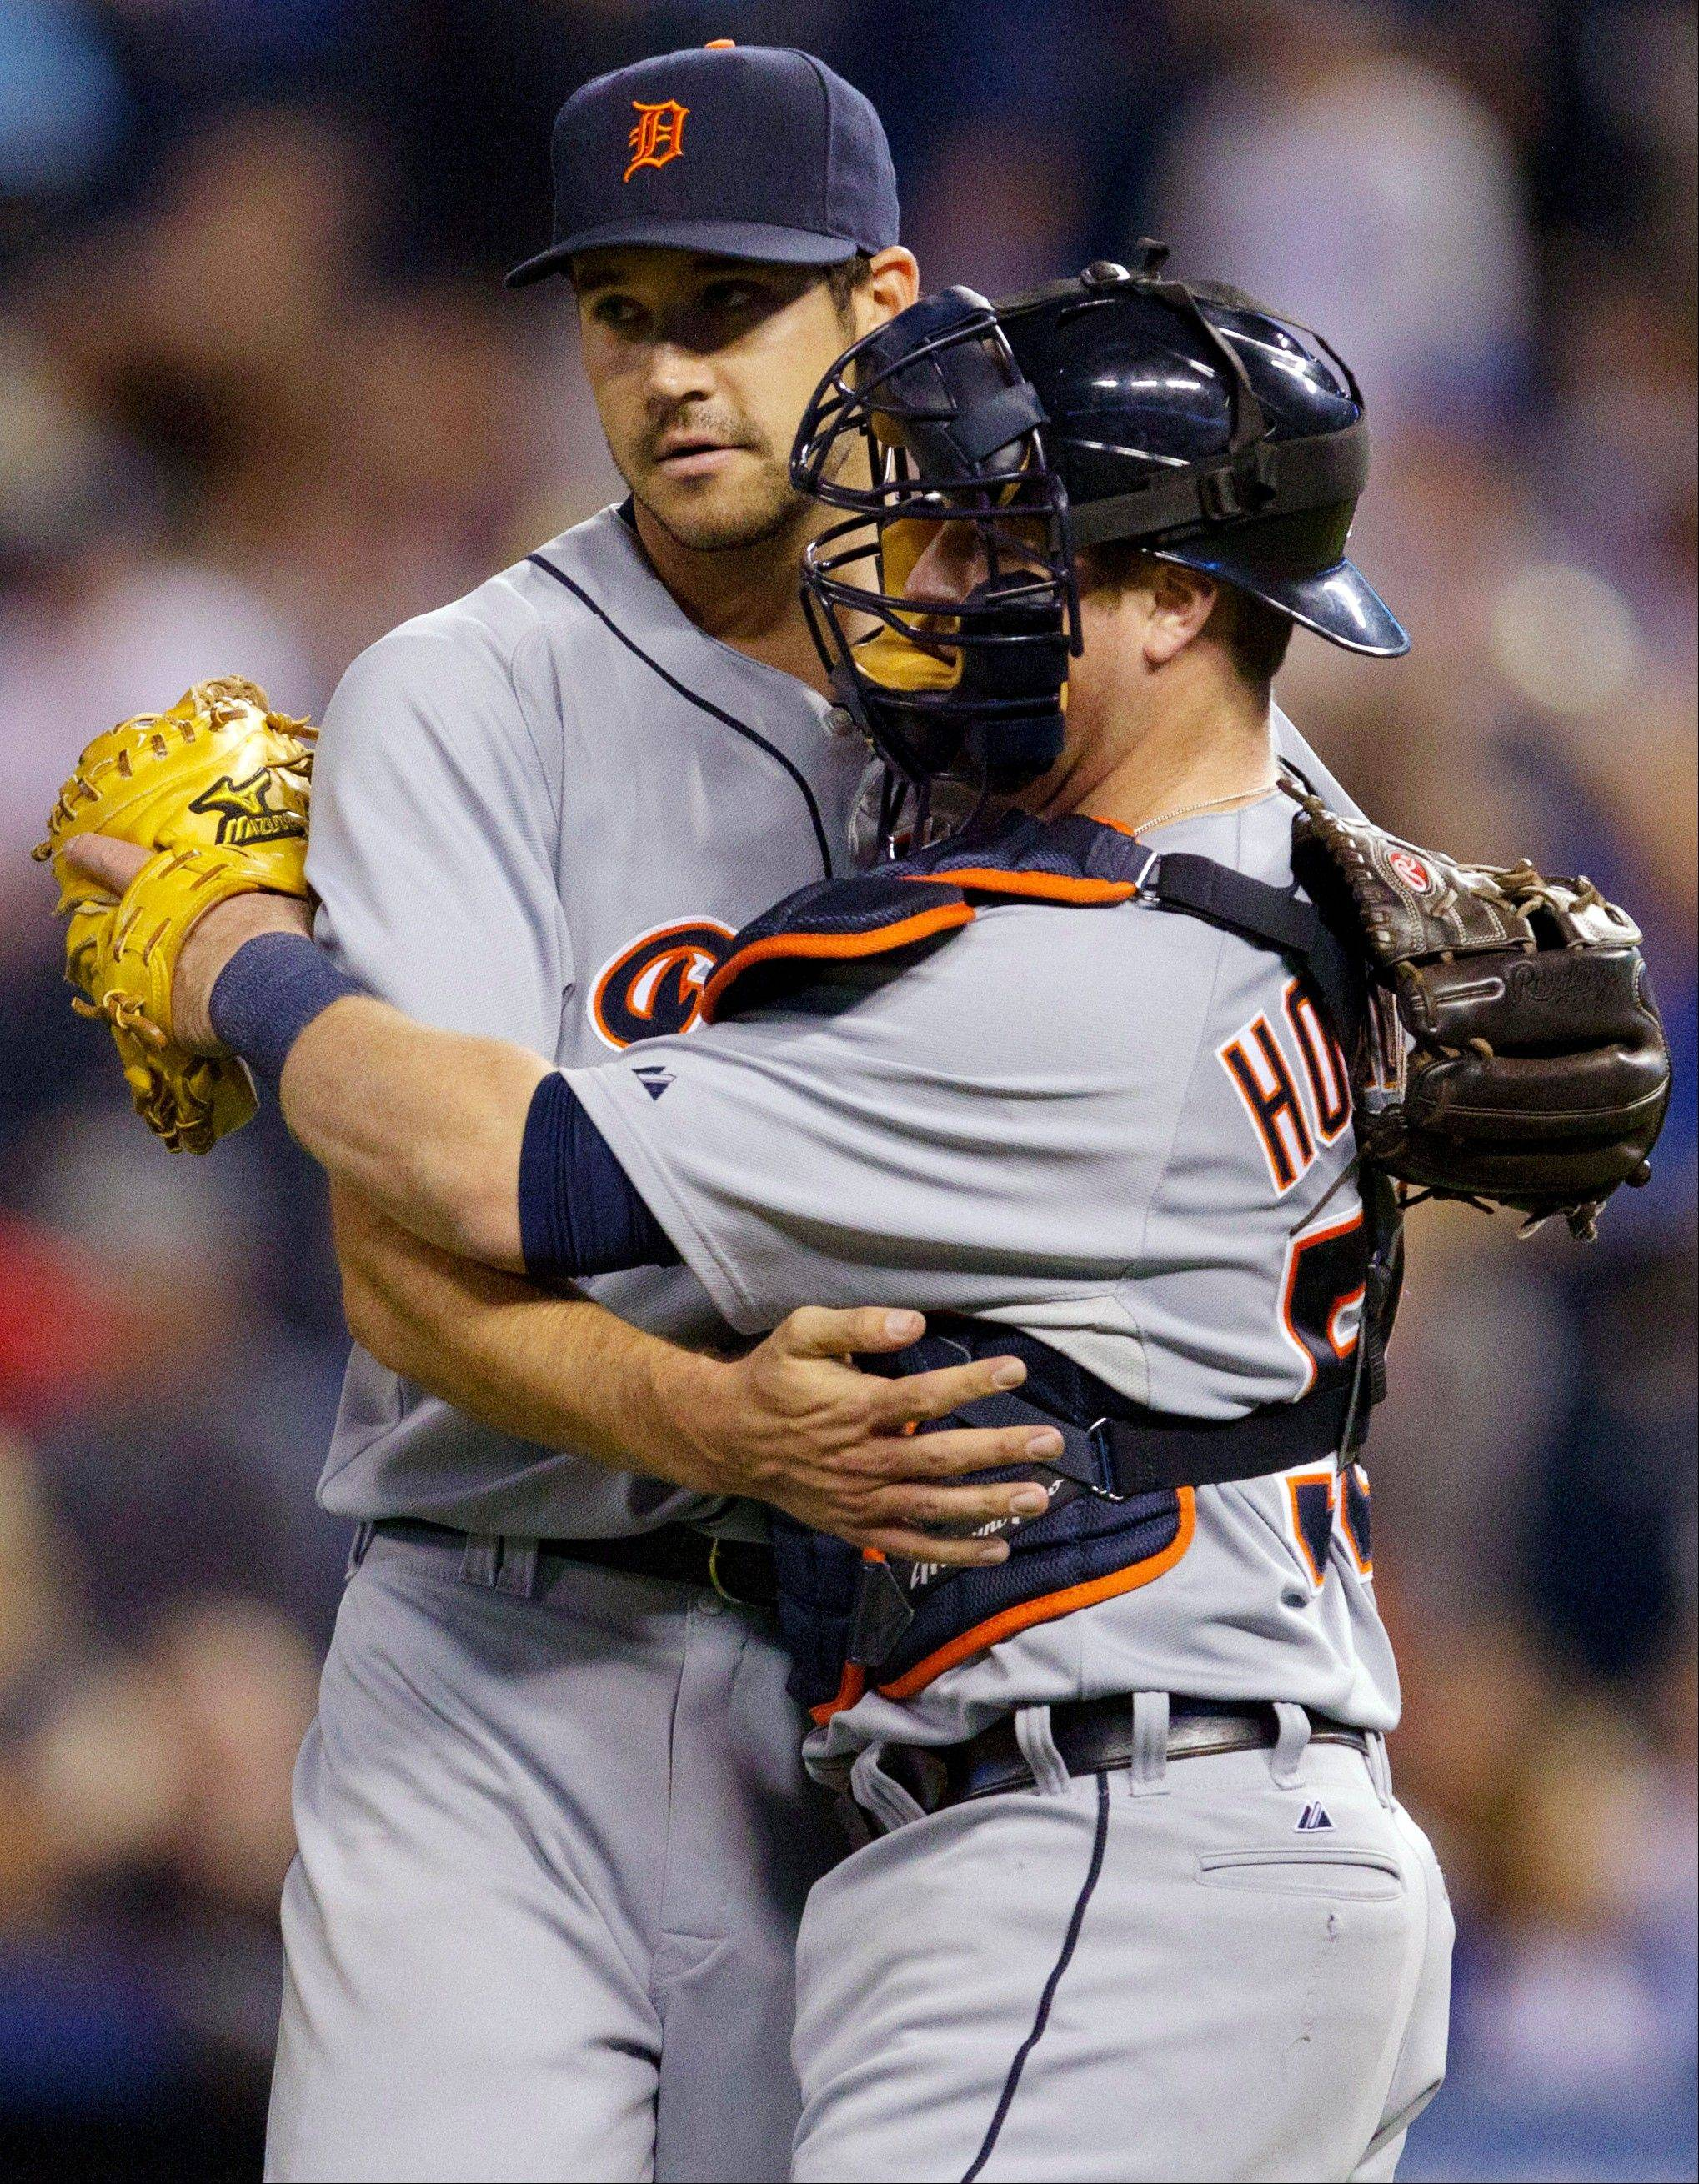 Detroit Tigers relief pitcher Luke Putkonen, left, is congratulated by catcher Bryan Holaday following their 1-0 win over the Kansas City Royals on Wednesday.